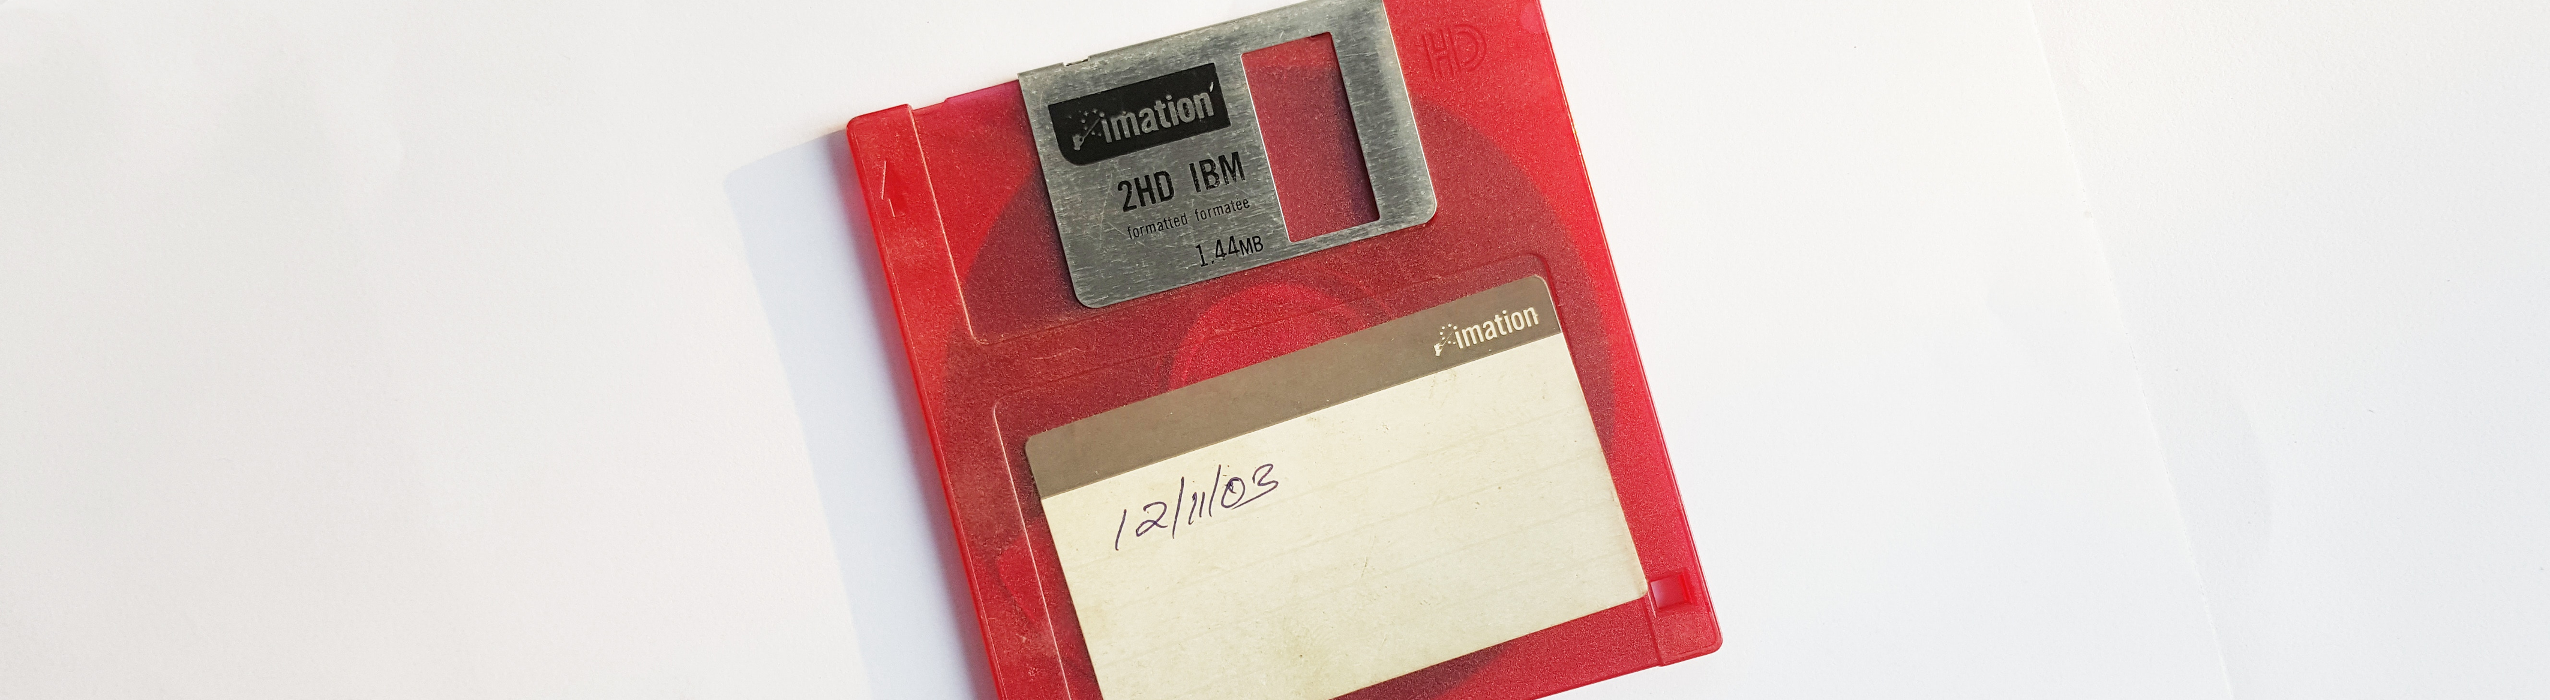 photo of a red floppy disc